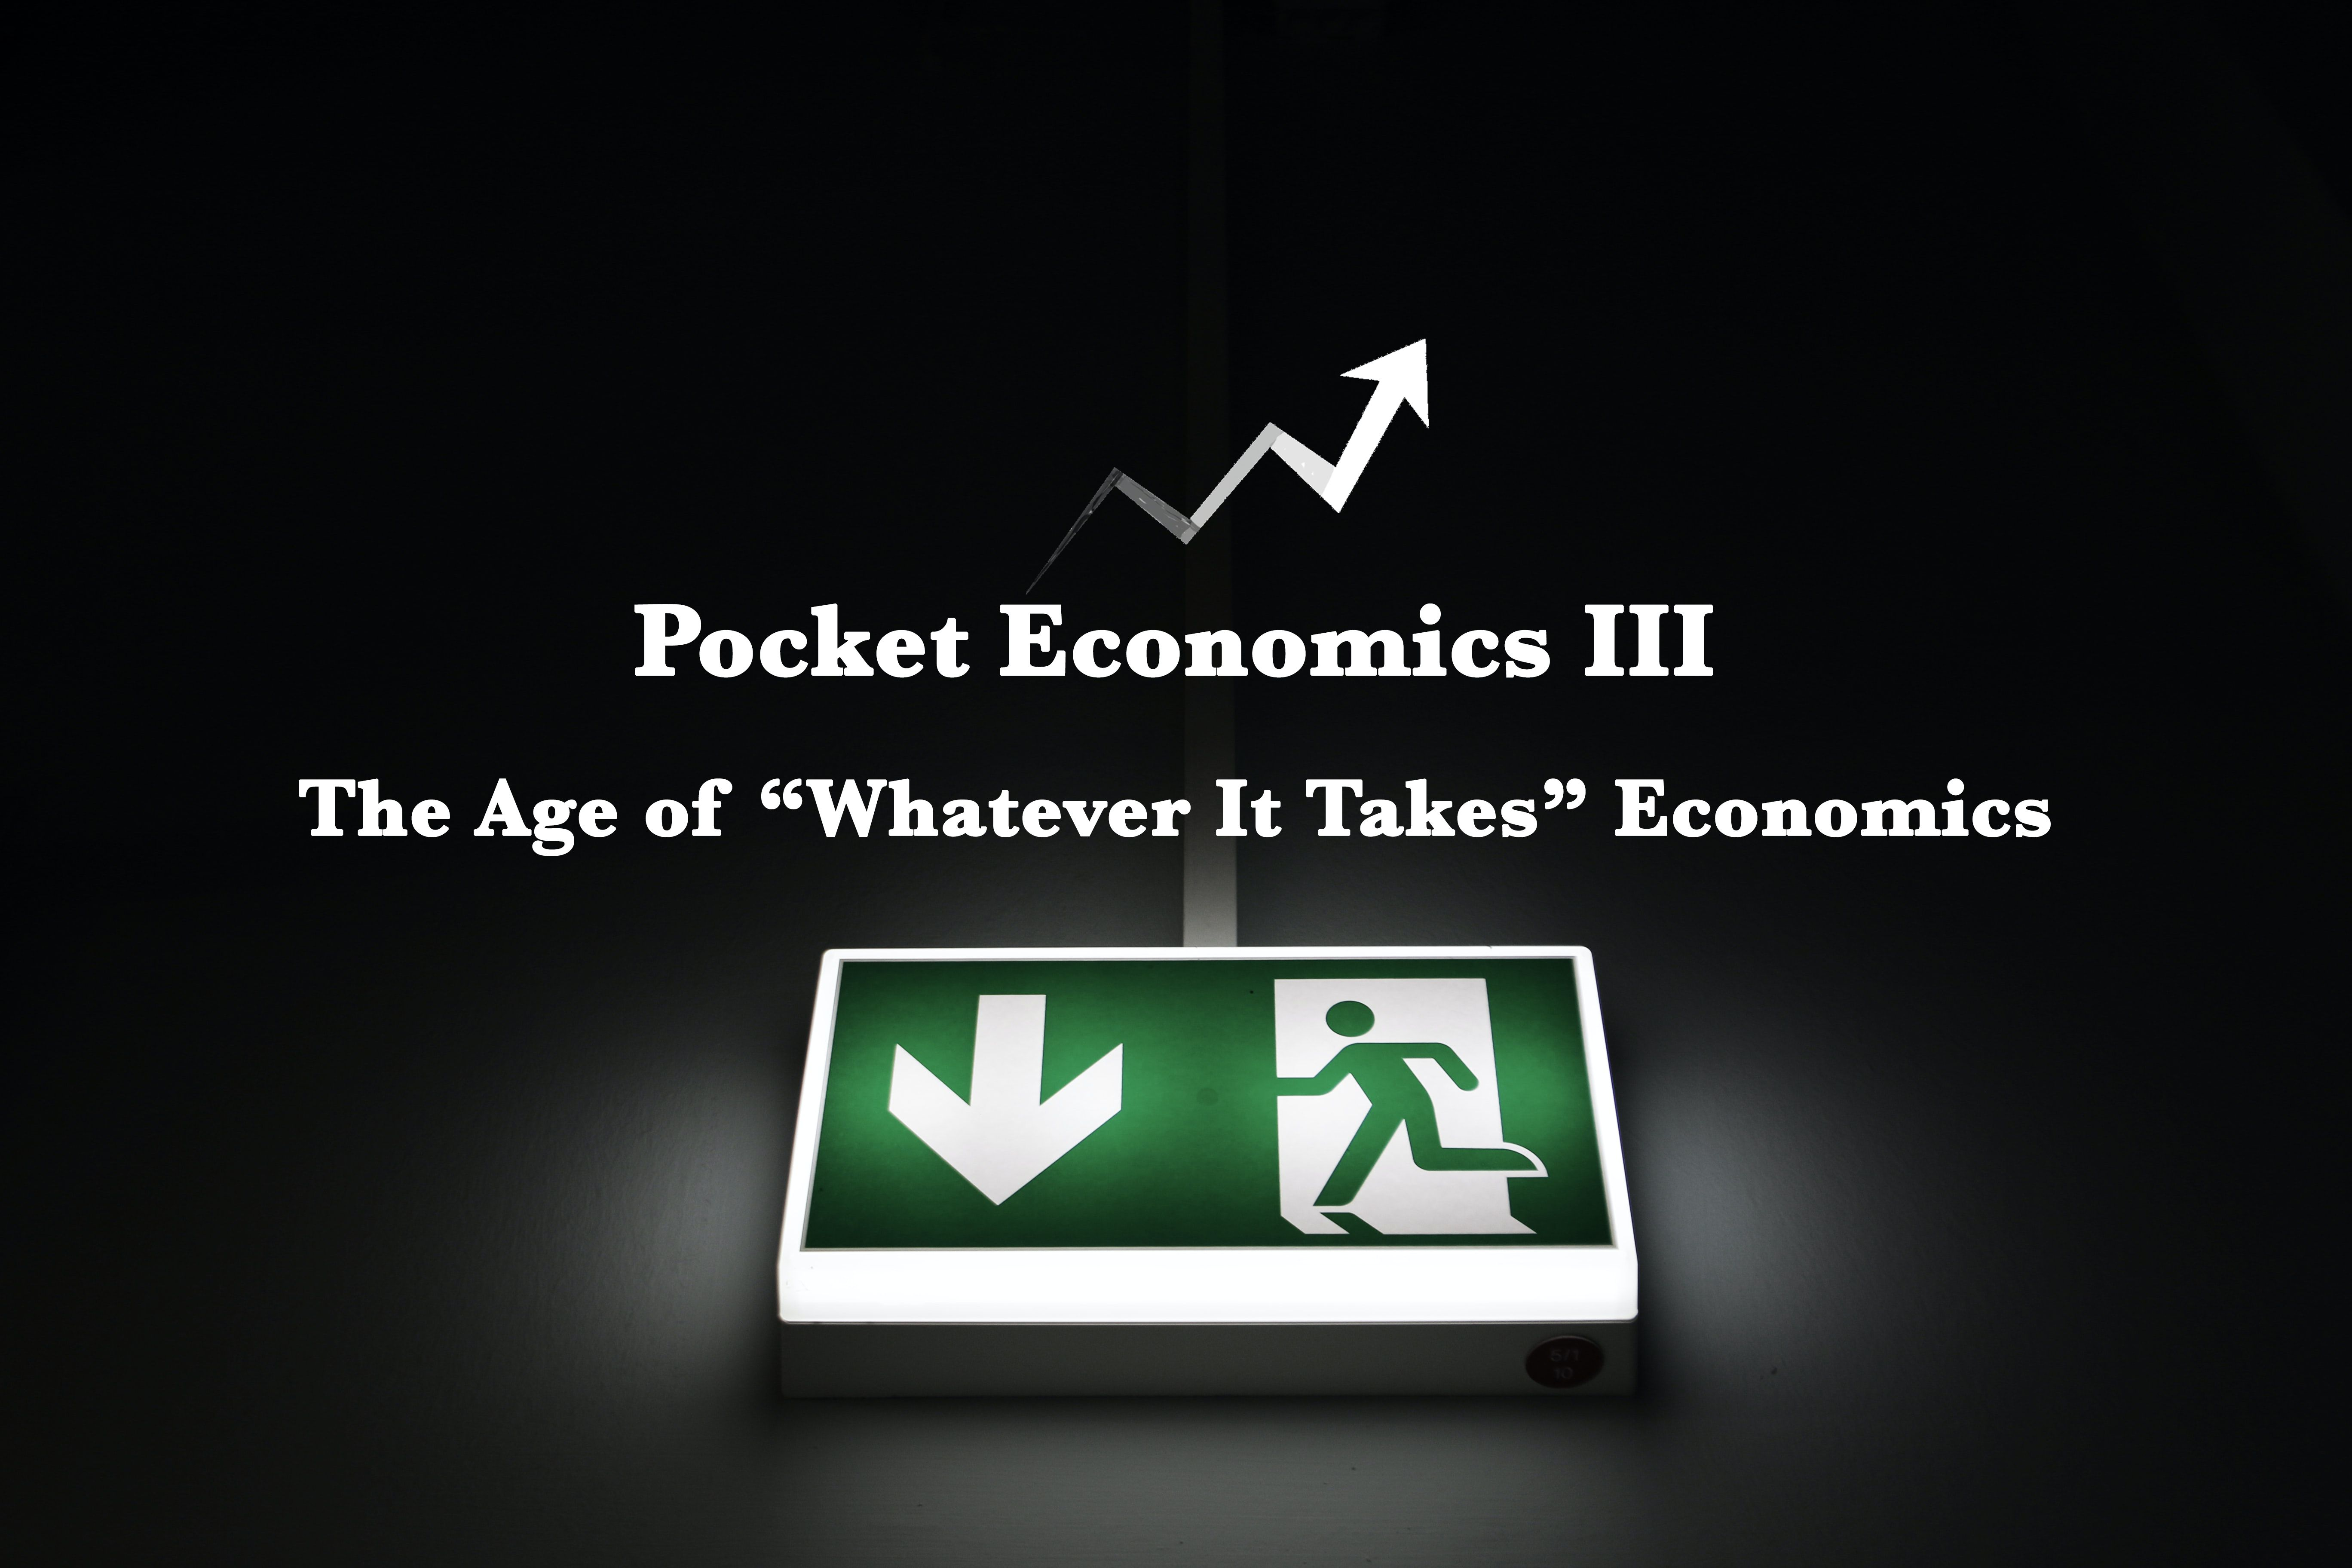 /the-age-of-whatever-it-takes-economic-policies-27u3eub feature image